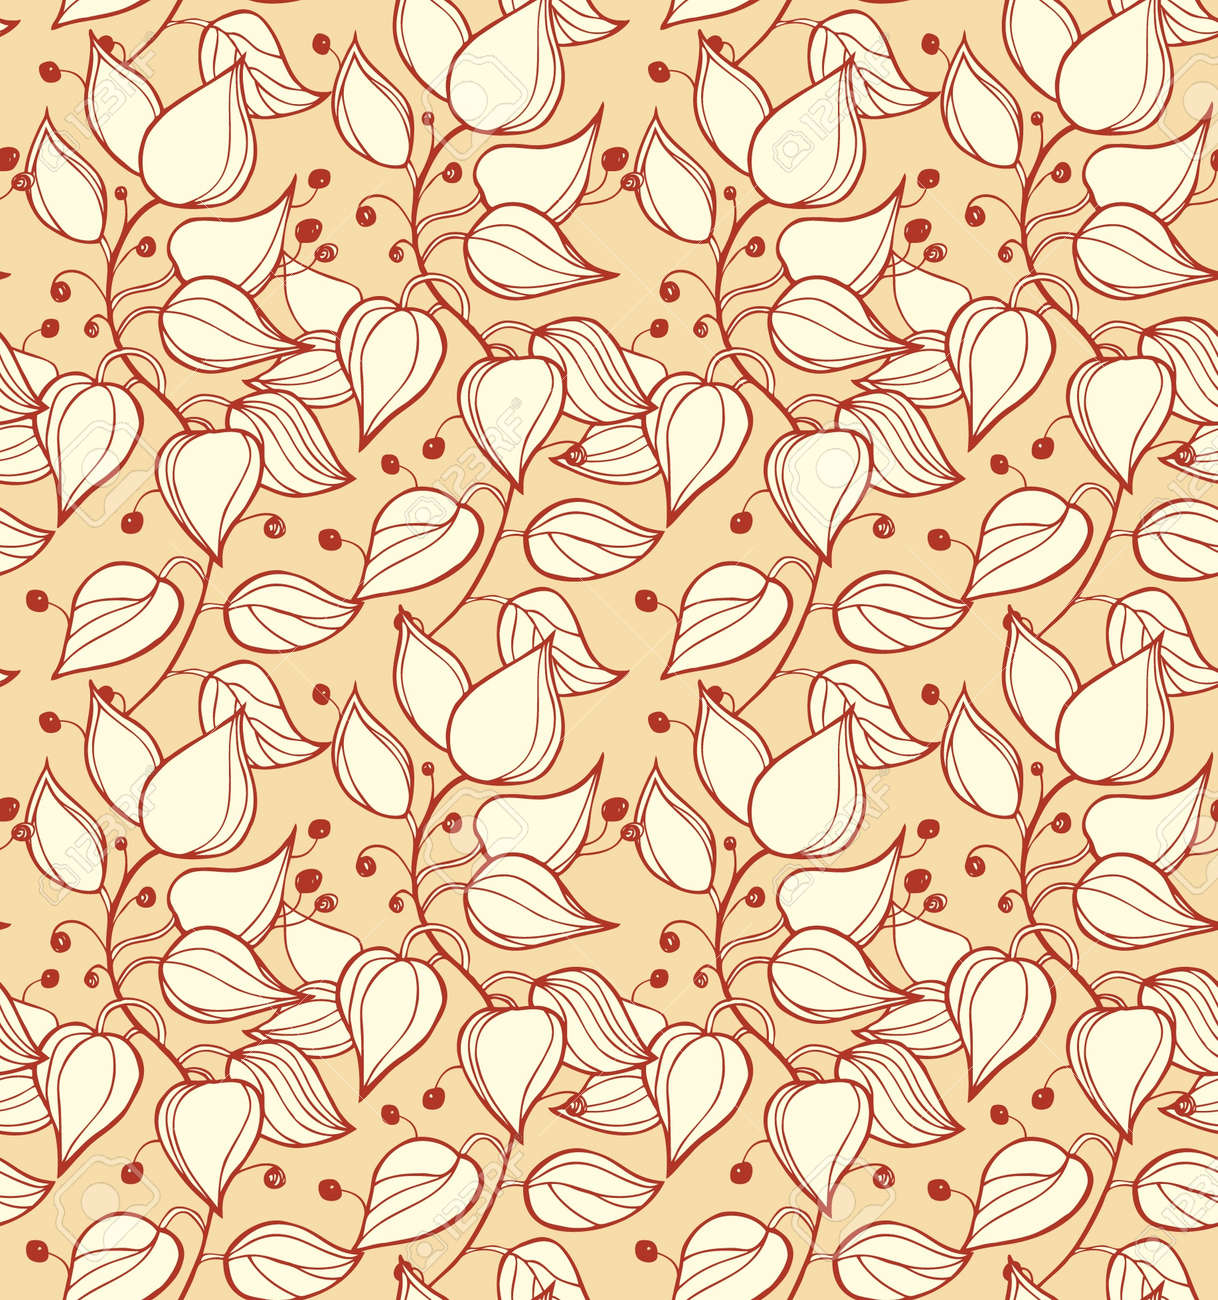 Branches Seamless Ornamental Pattern Decorative Modern Floral Background  Beautiful Ornate Template With Leafs For Design And